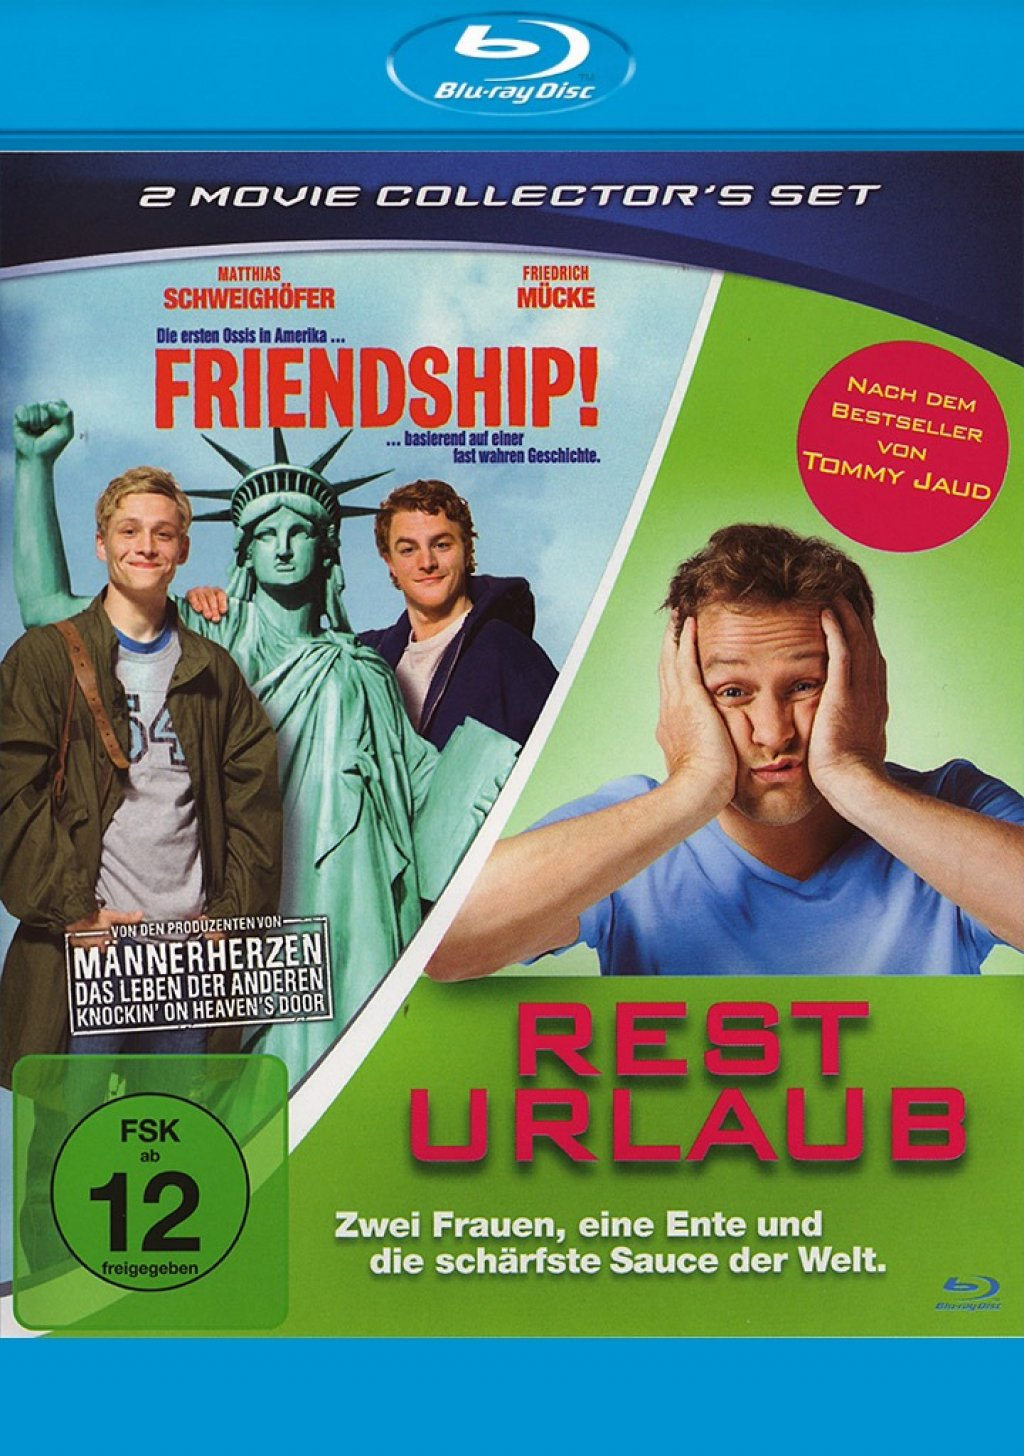 Friendship! & Resturlaub (Blu-ray)